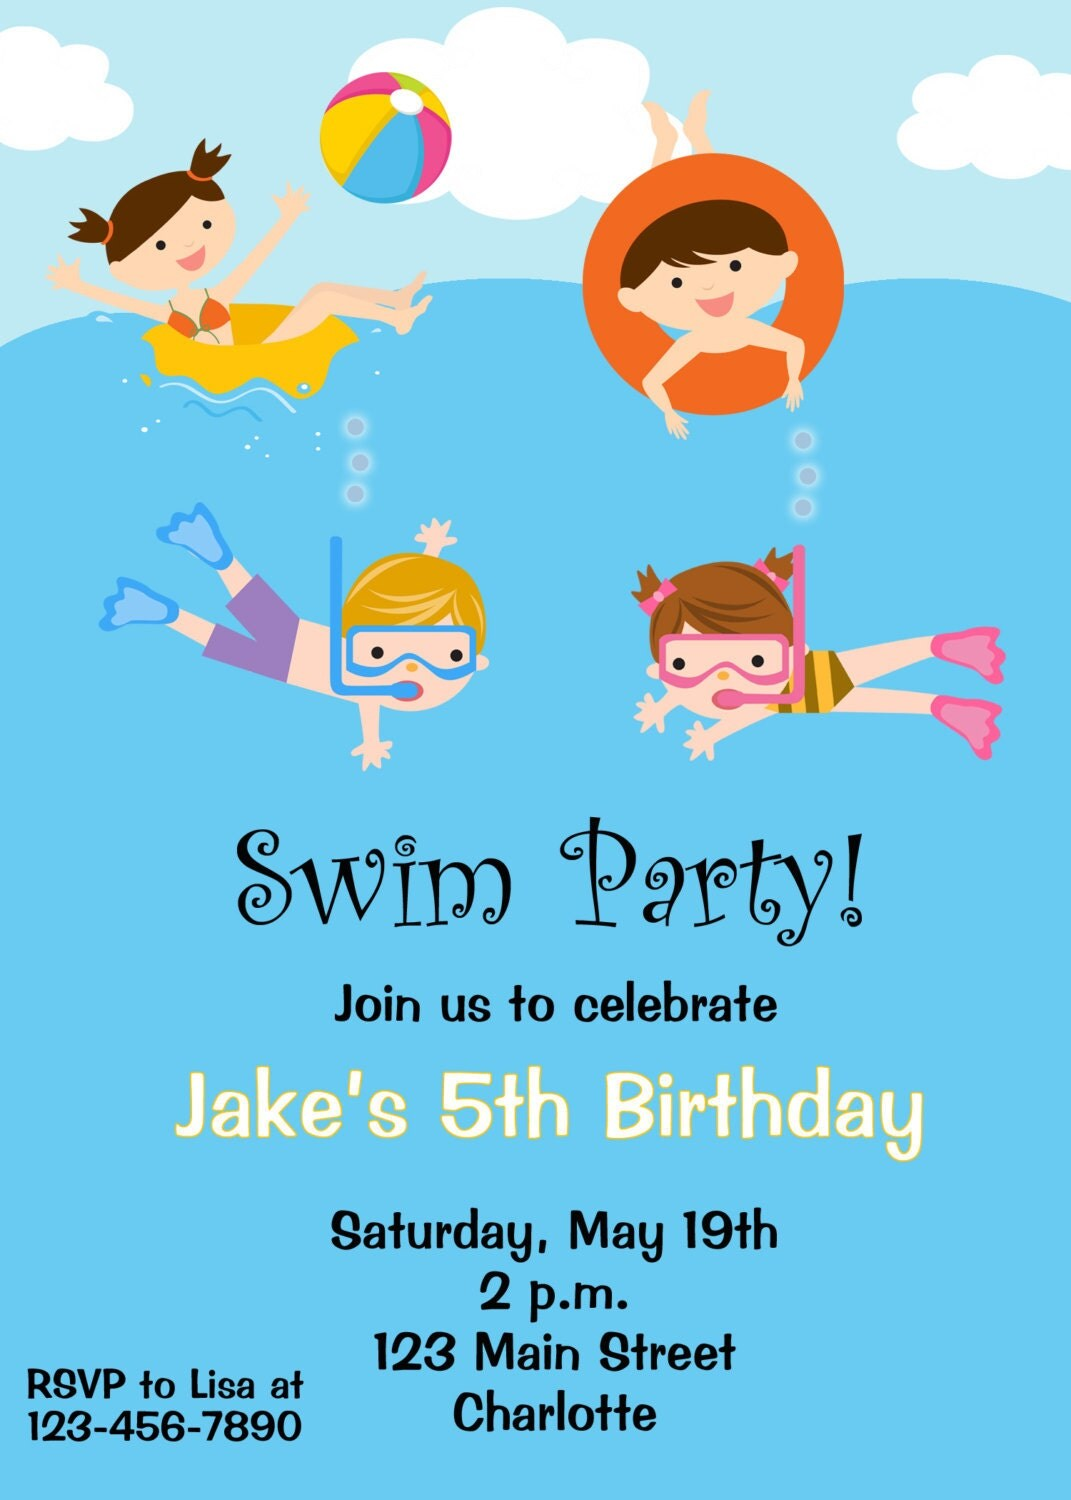 Pool party birthday party invitations printable or digital - Pool Party Birthday Invitation Pool Party By Thebutterflypress